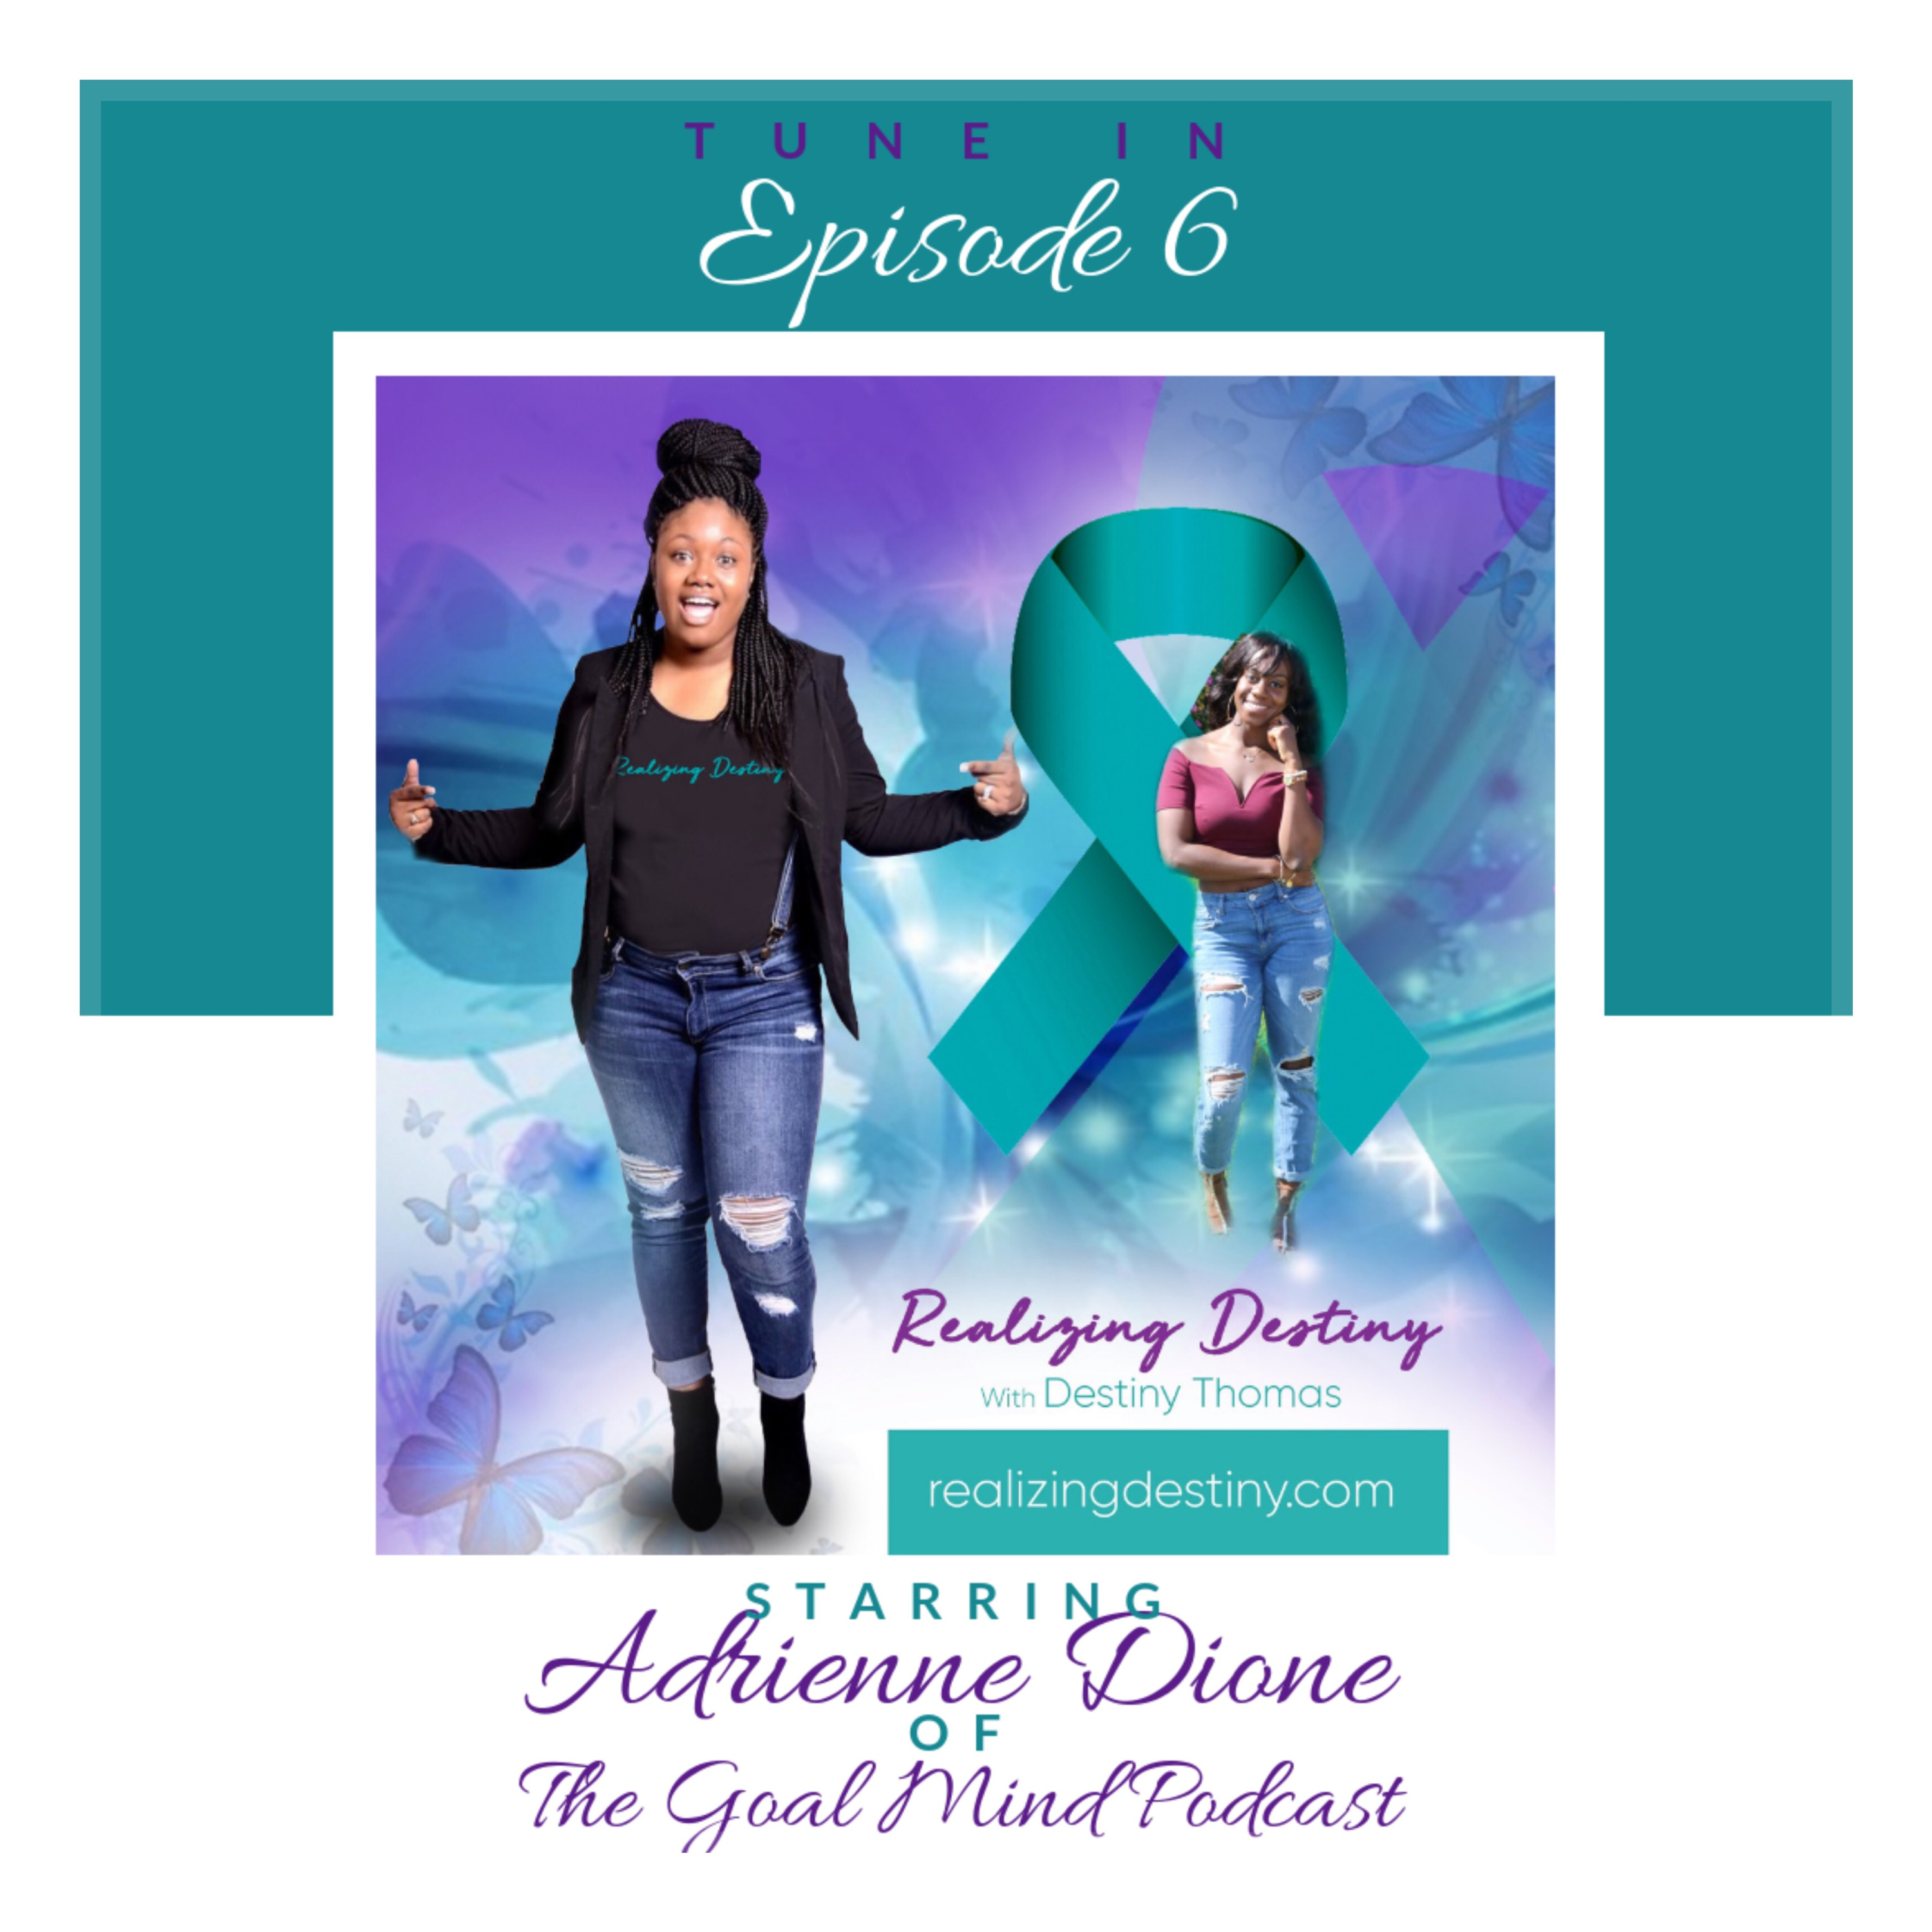 God you told me to jump, now what? Entrepreneurship w/ God Special Guest Adrienne Dione